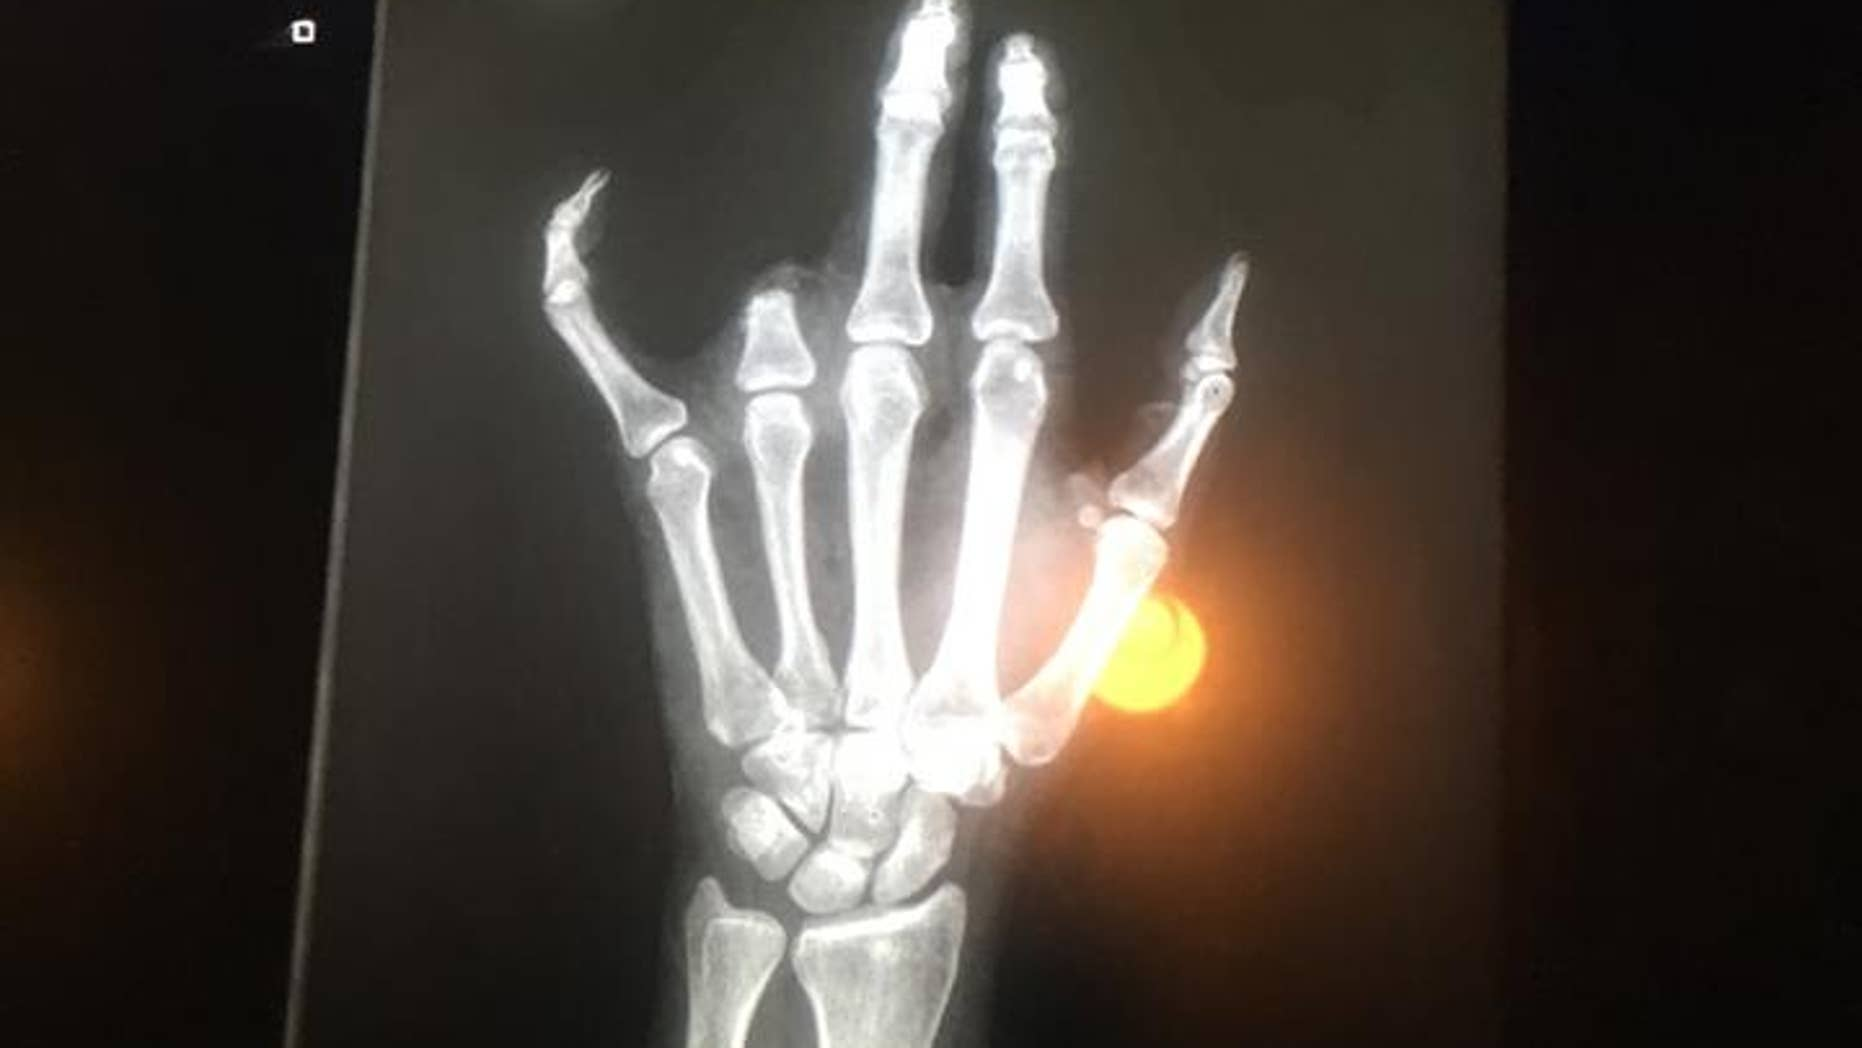 This mom lost her finger after it got caught on a fence at her son's T-ball practice.